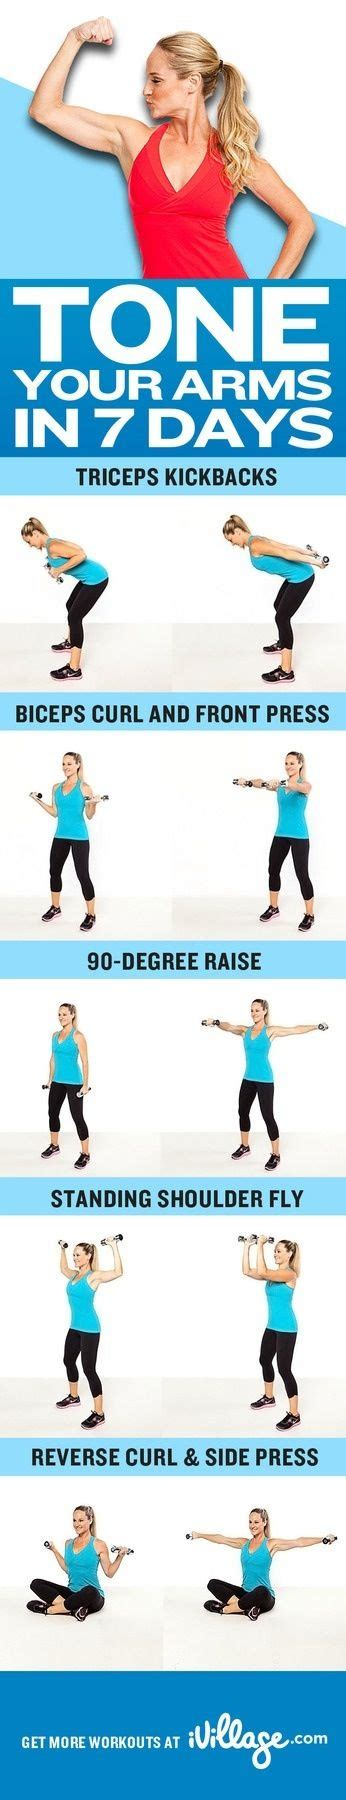 pin by lyndsay lemon on workouts at home